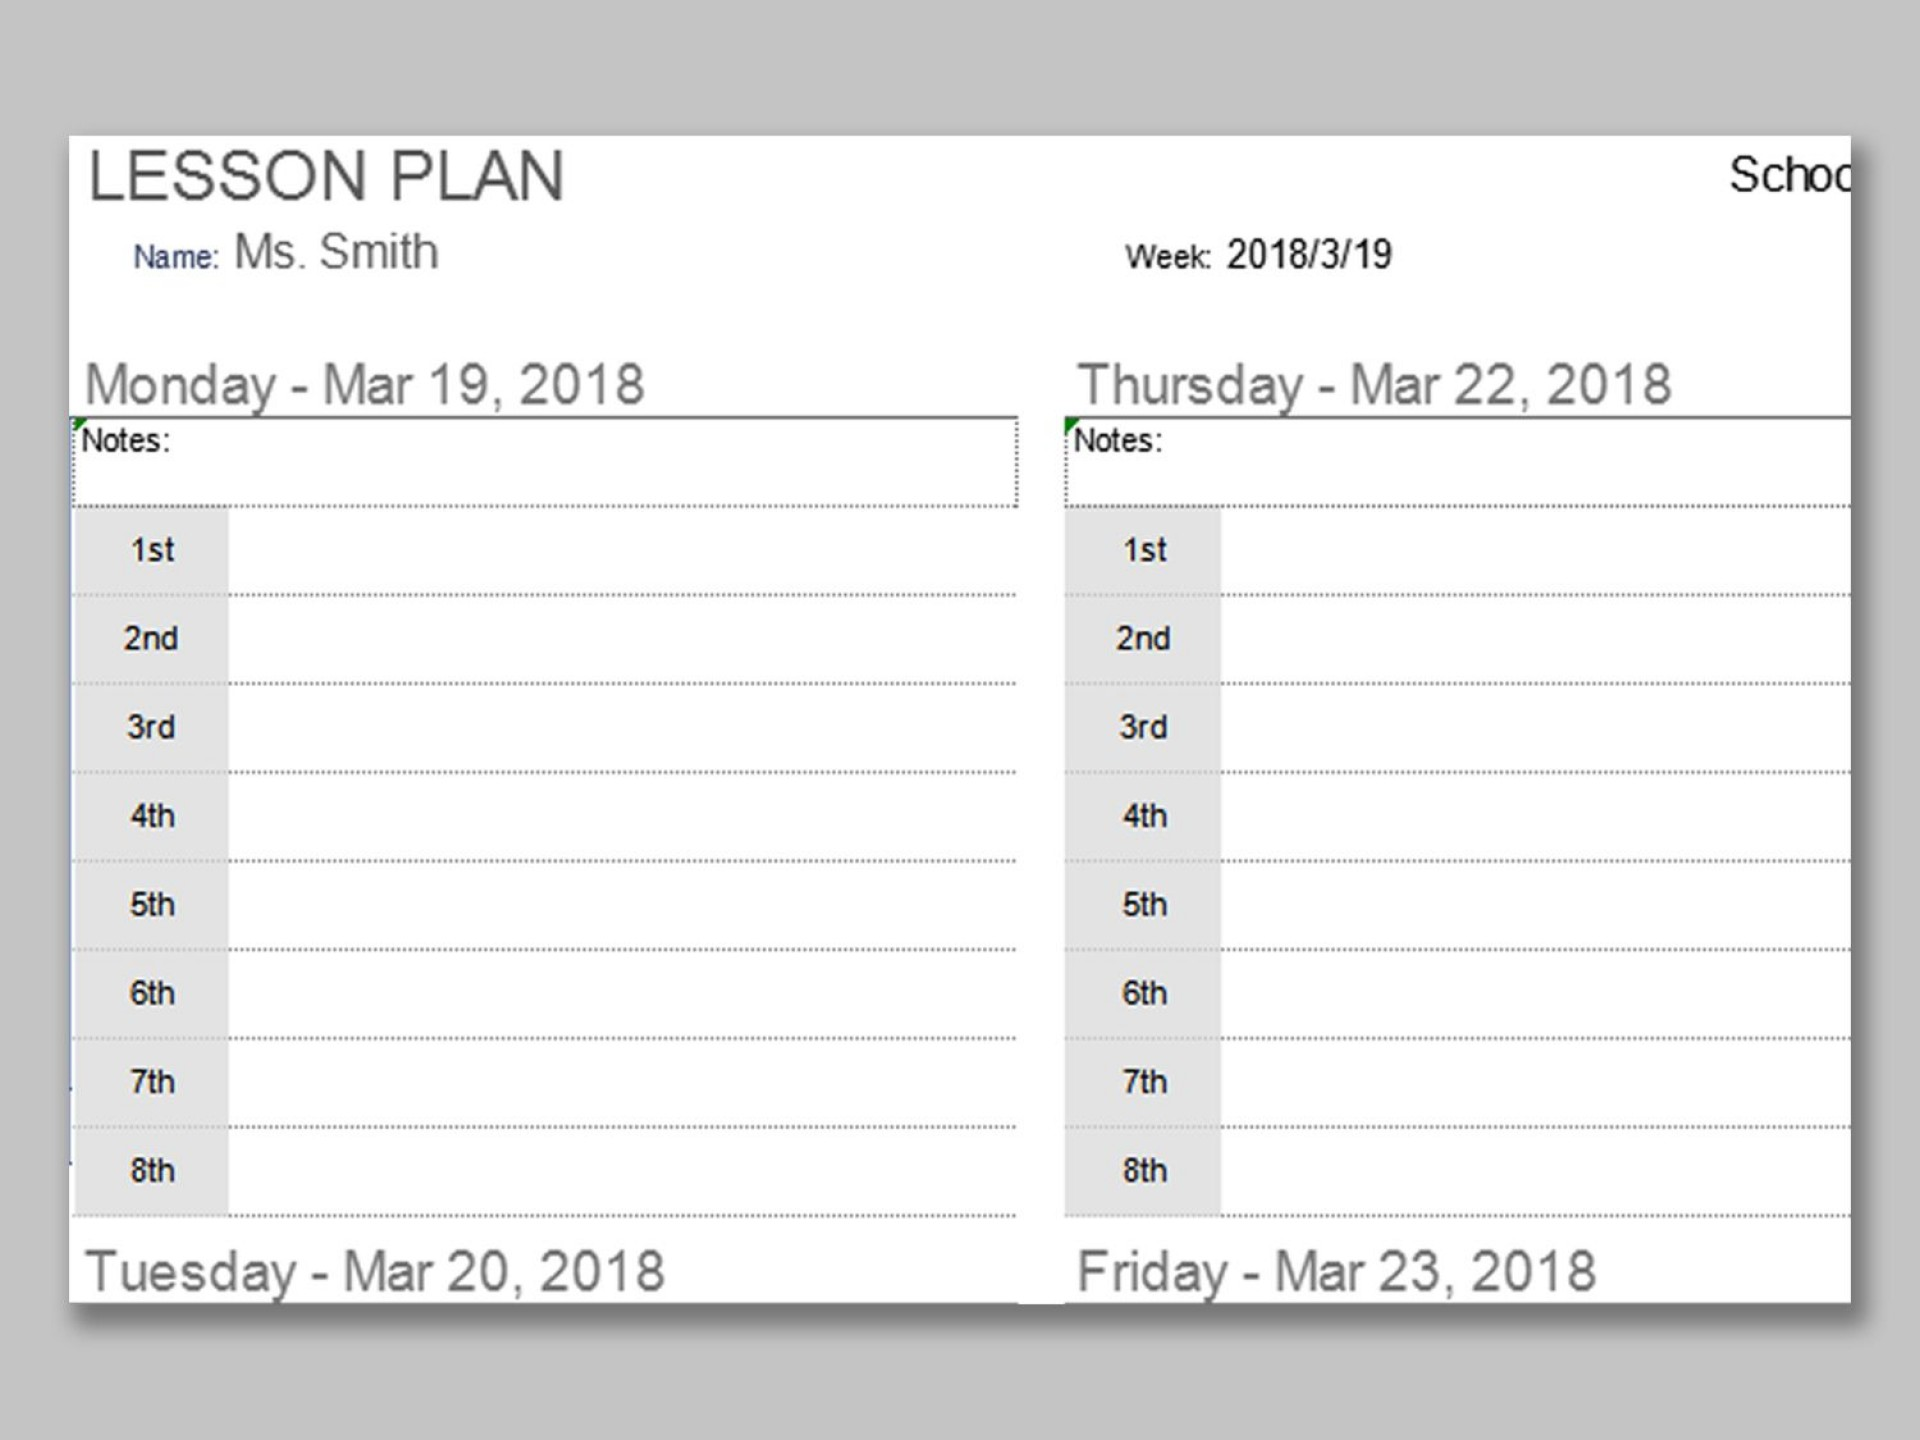 001 Impressive Weekly Lesson Plan Template Photo  Editable Preschool Pdf Google Sheet1920